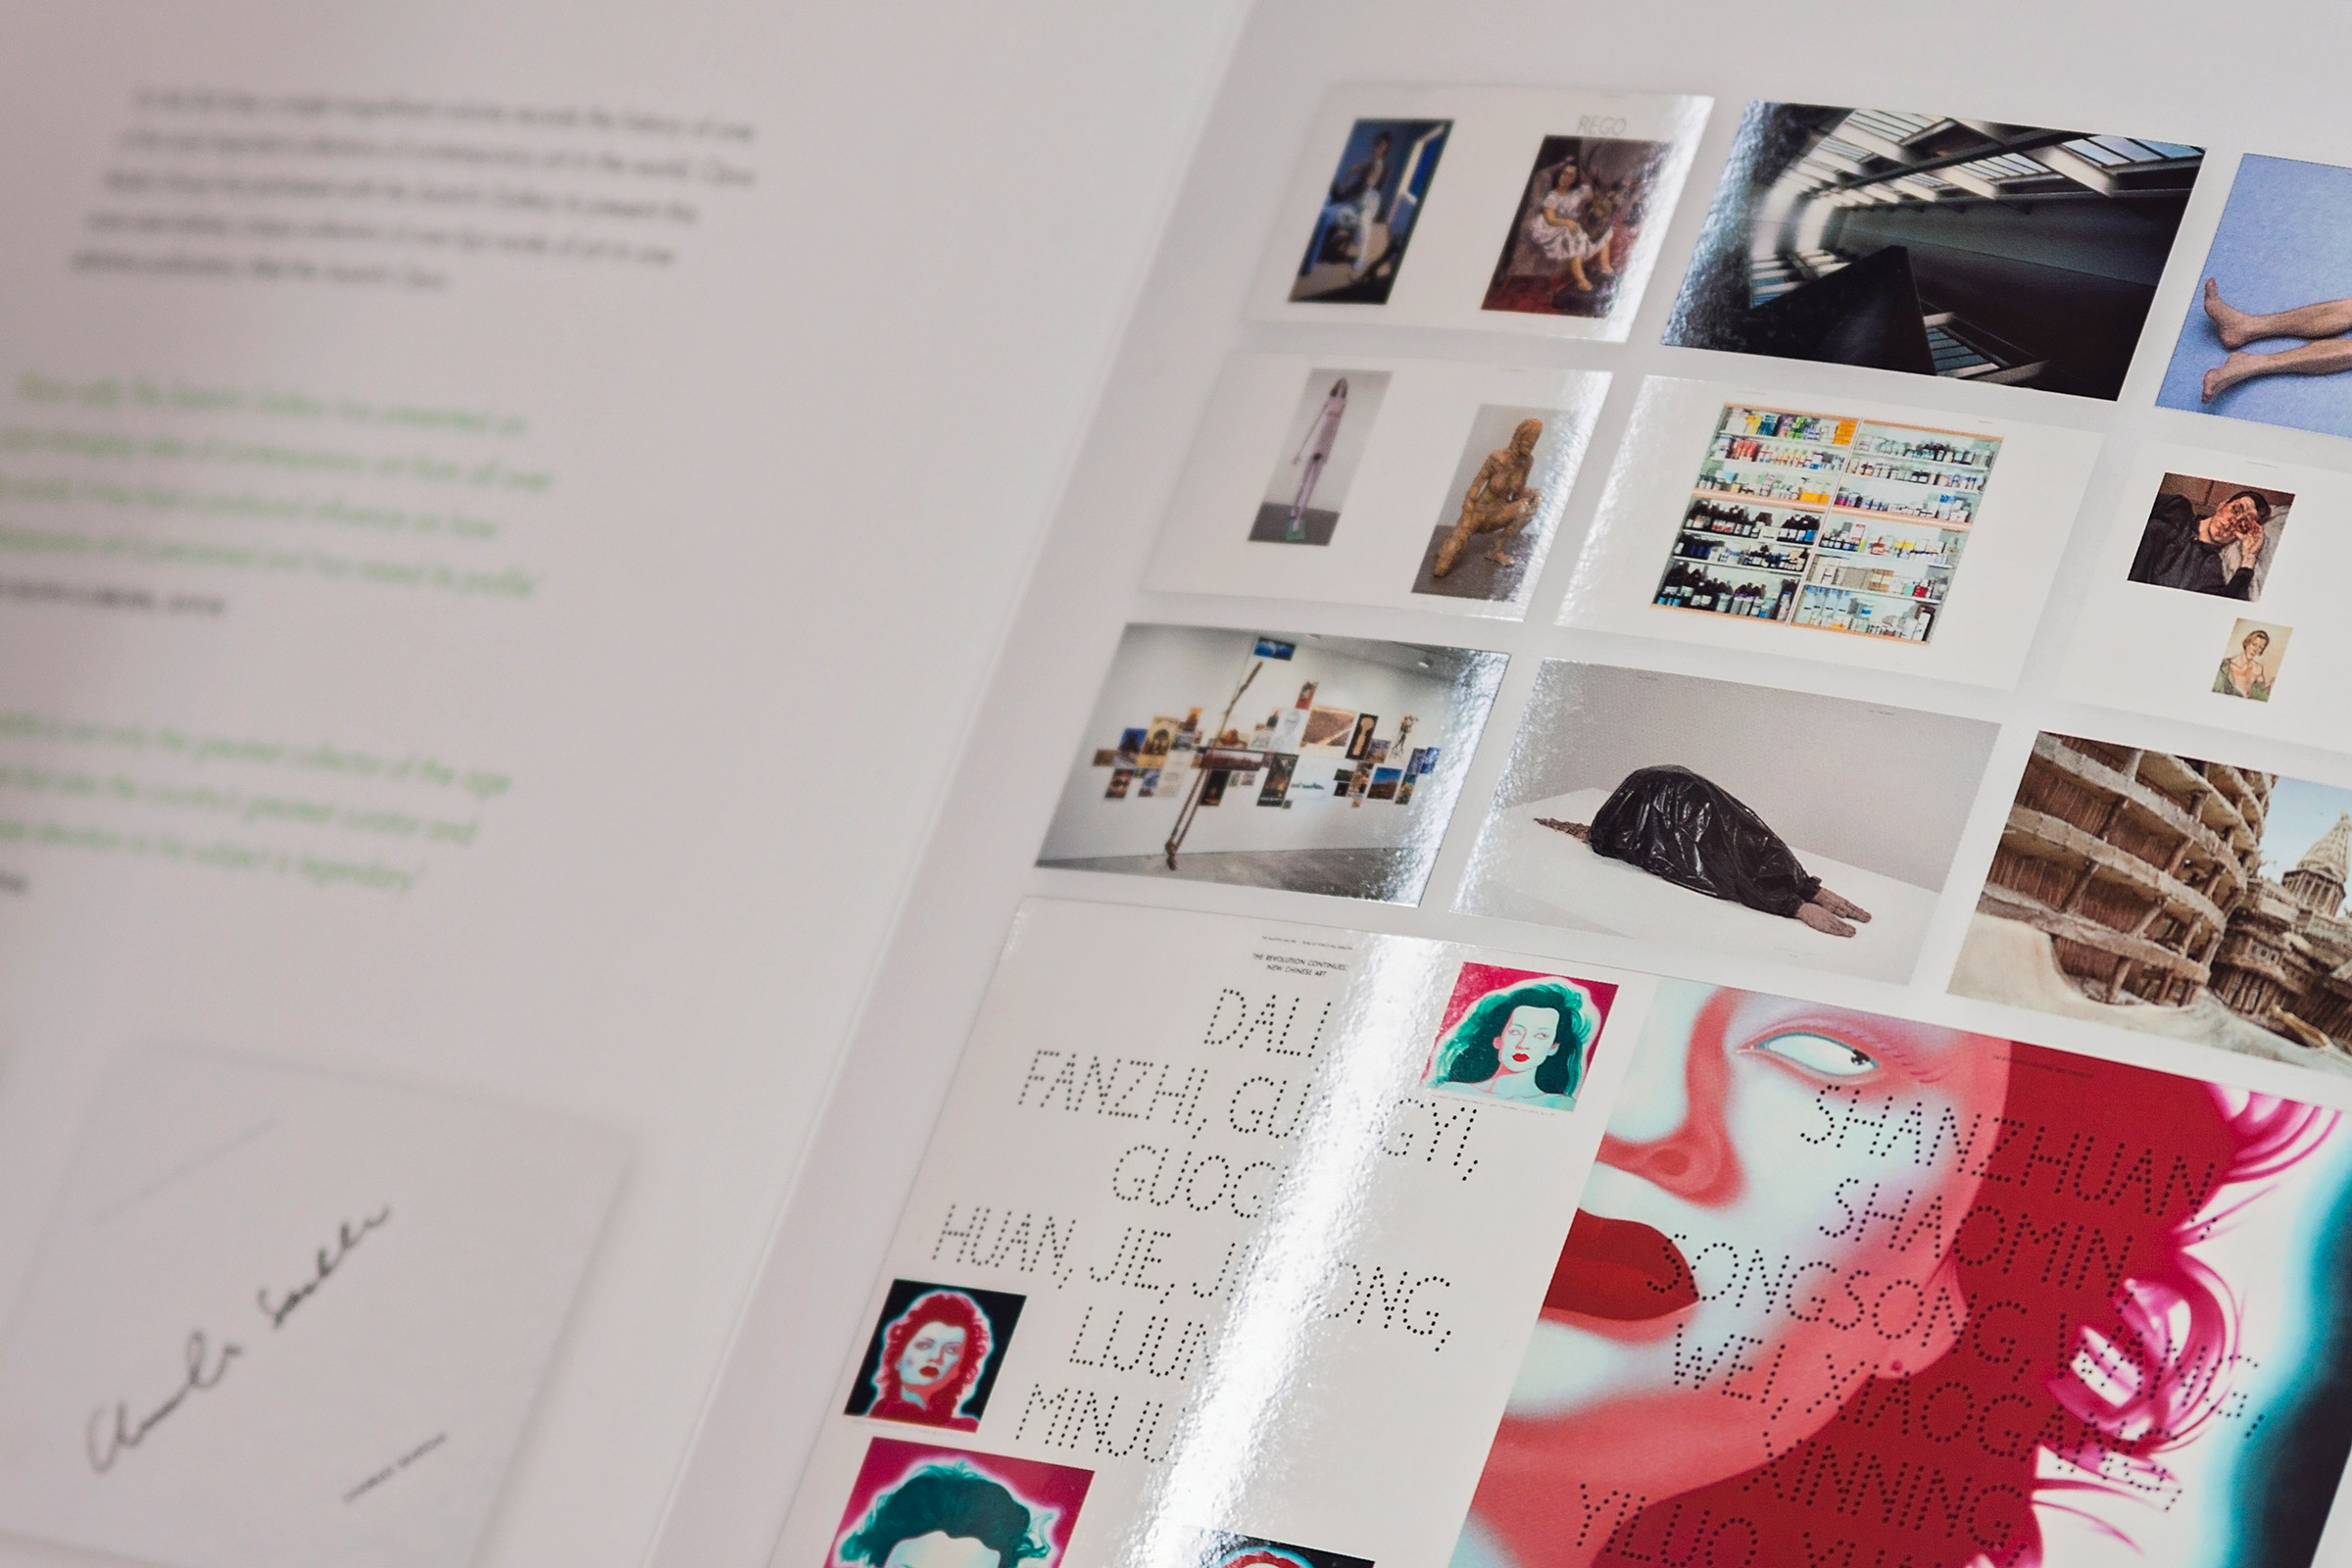 a spot uv gloss print technique used on a close up of a brochure for The Saatchi Gallery